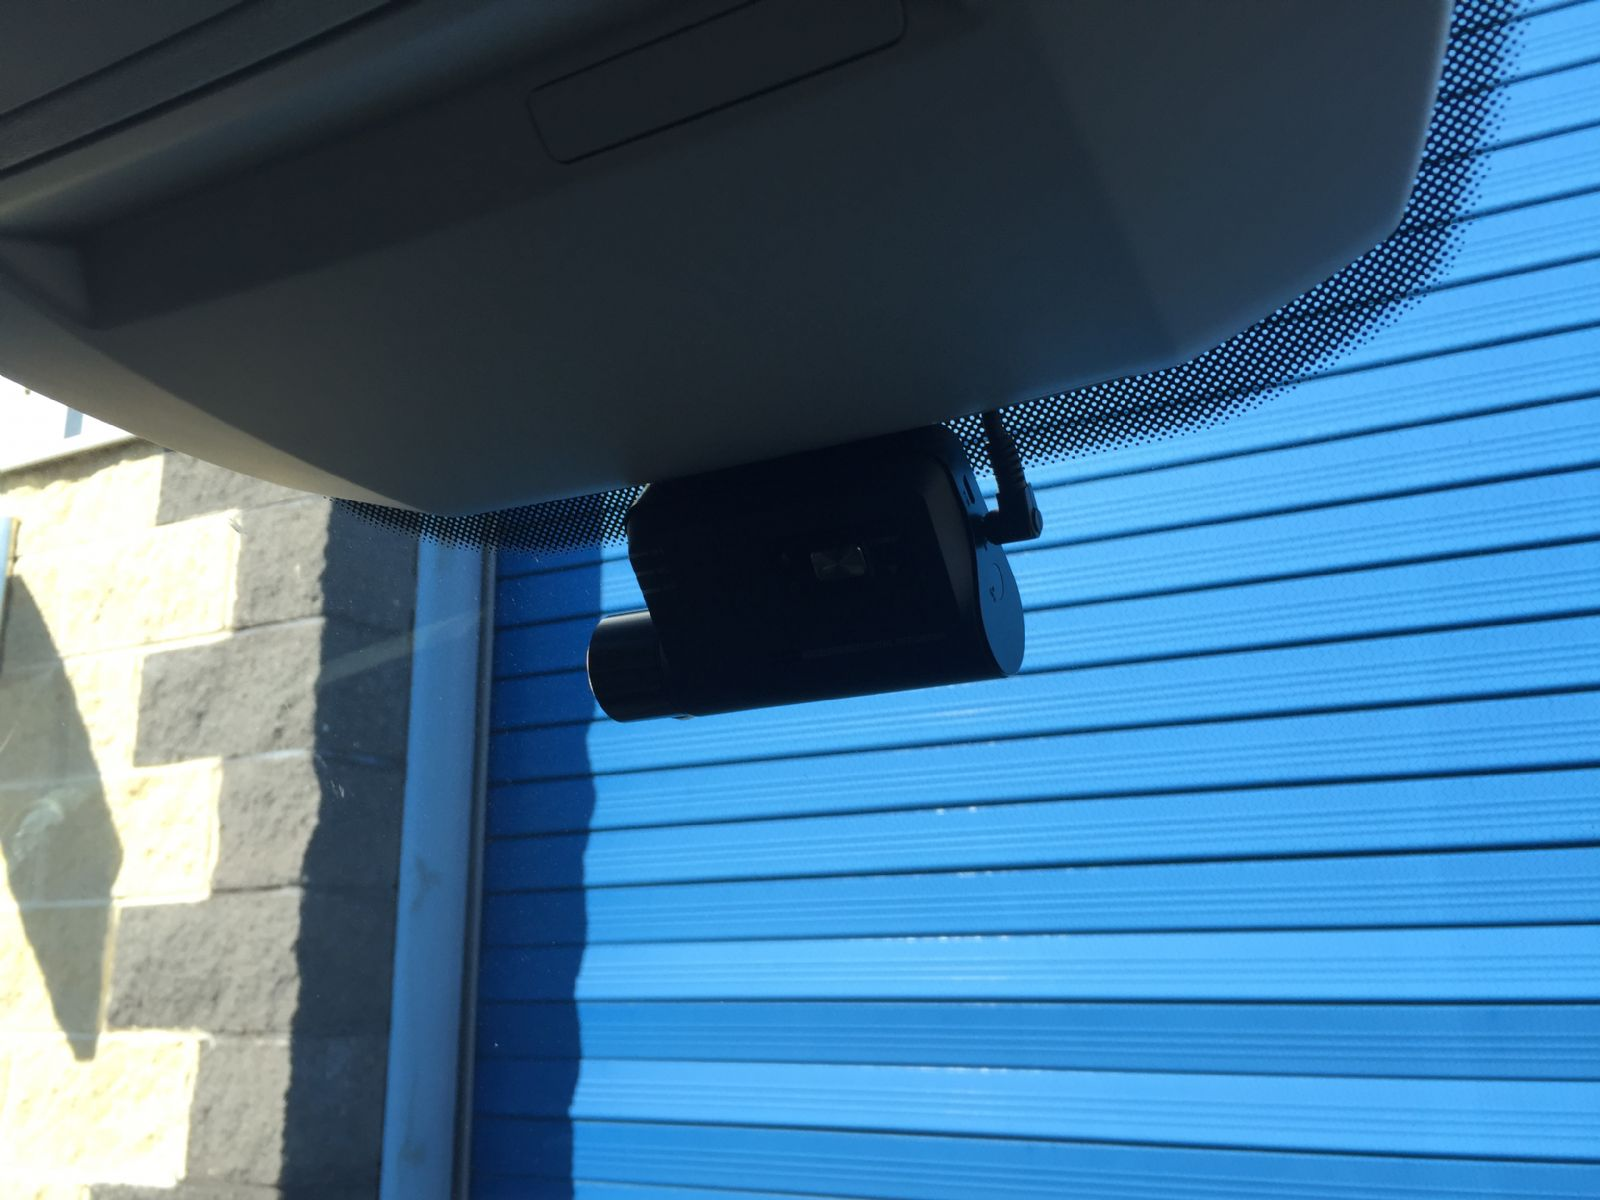 Neat Dash Cam install in this new Volkswagen Crafter van